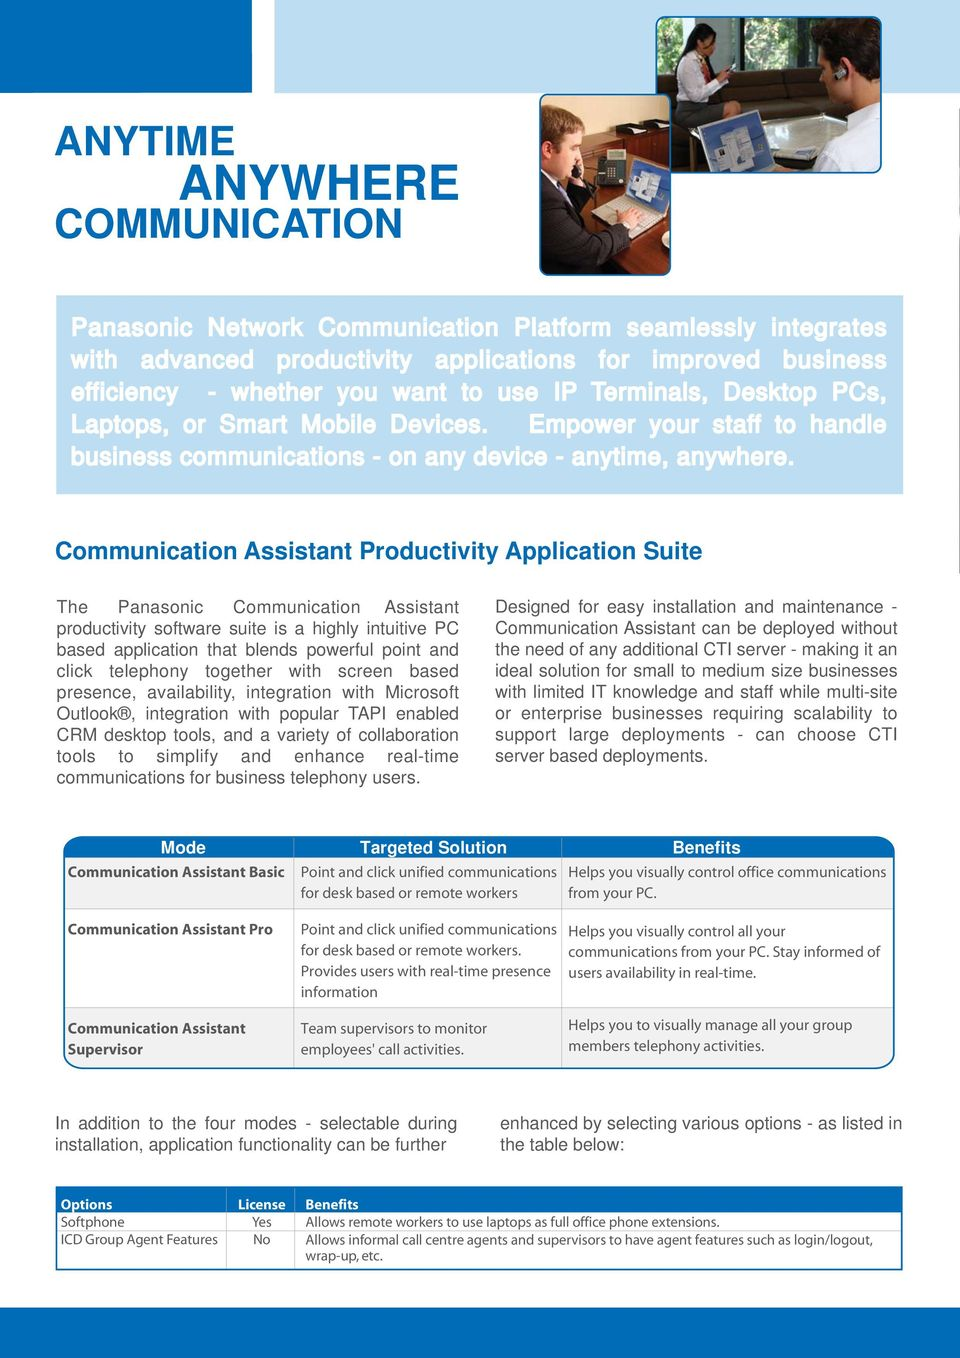 Communication Assistant Productivity Application Suite The Panasonic Communication Assistant productivity software suite is a highly intuitive PC based application that blends powerful point and